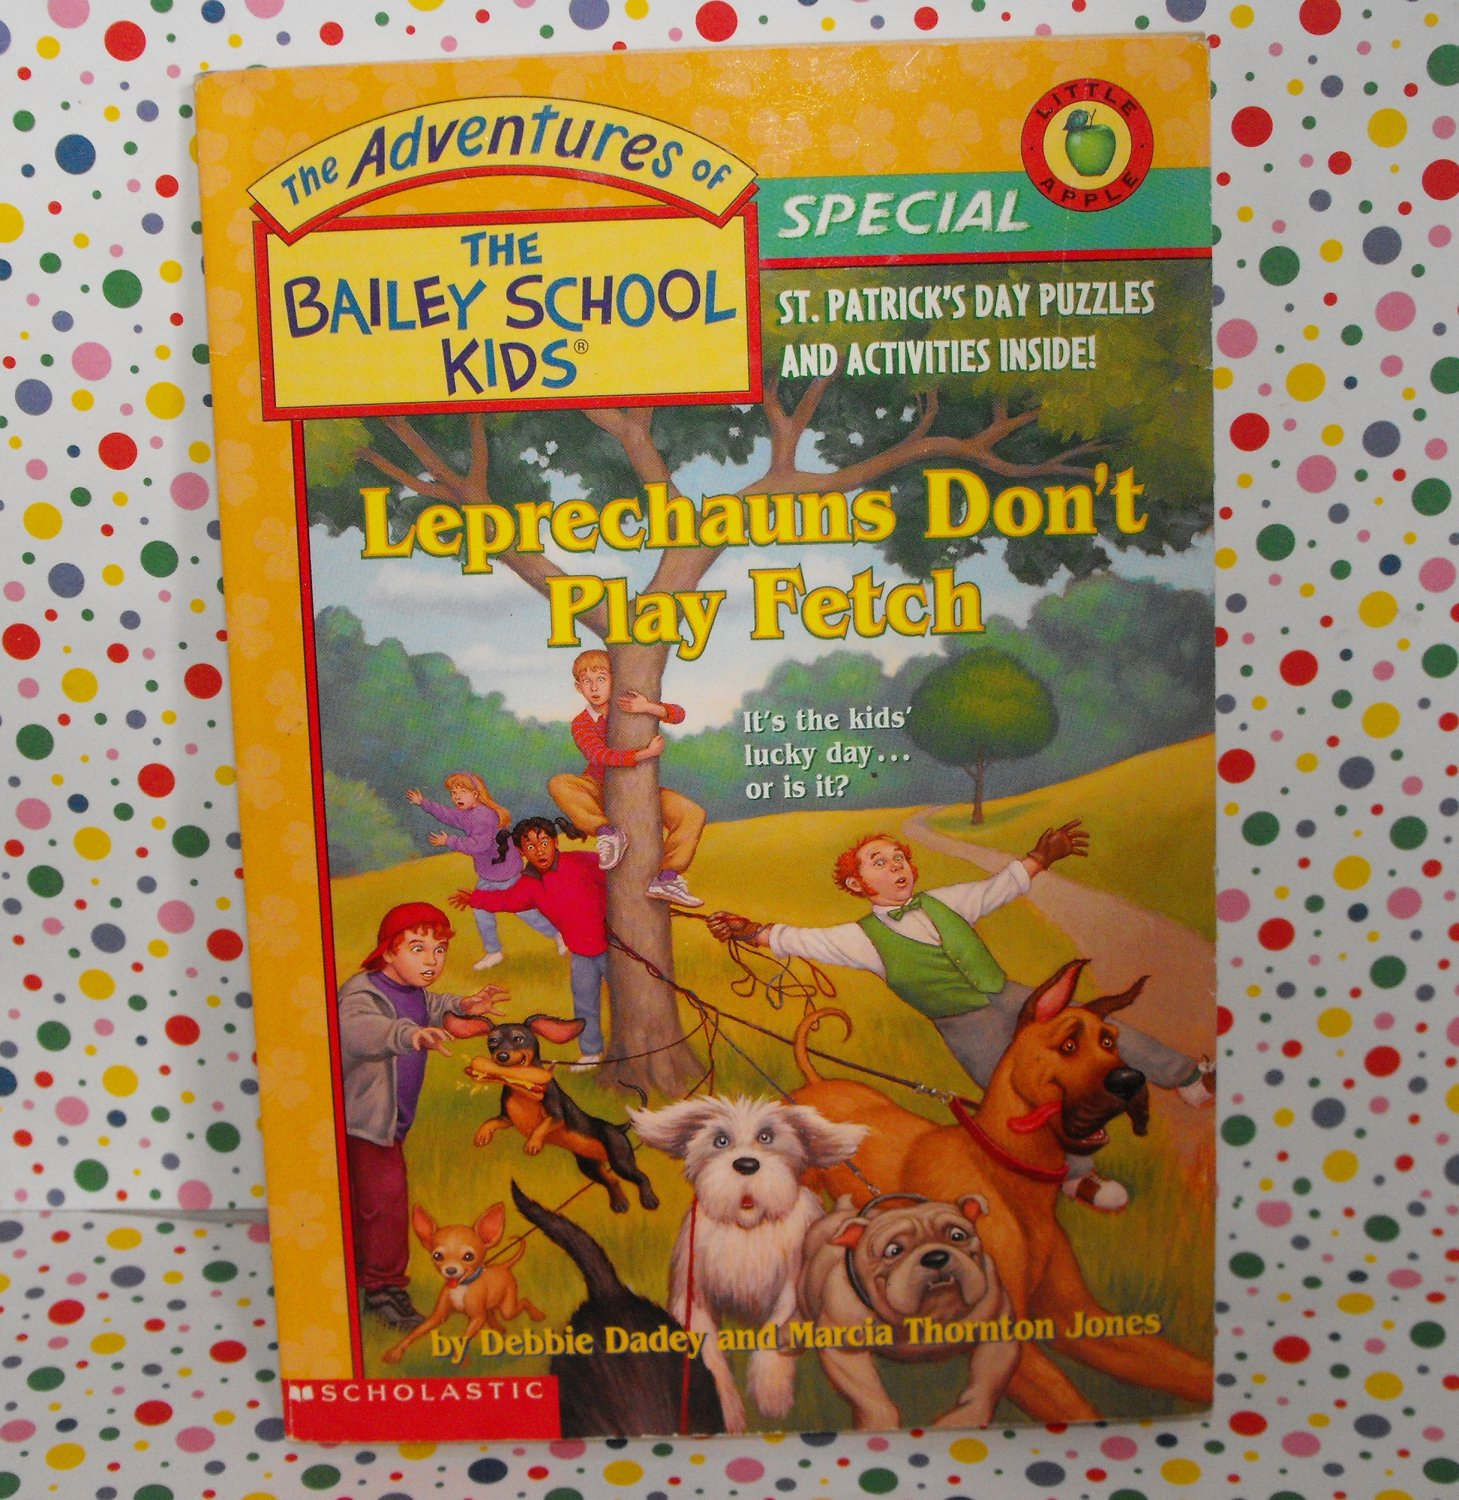 Bailey School Kids Holiday Special Leprechauns Don't Play Fetch